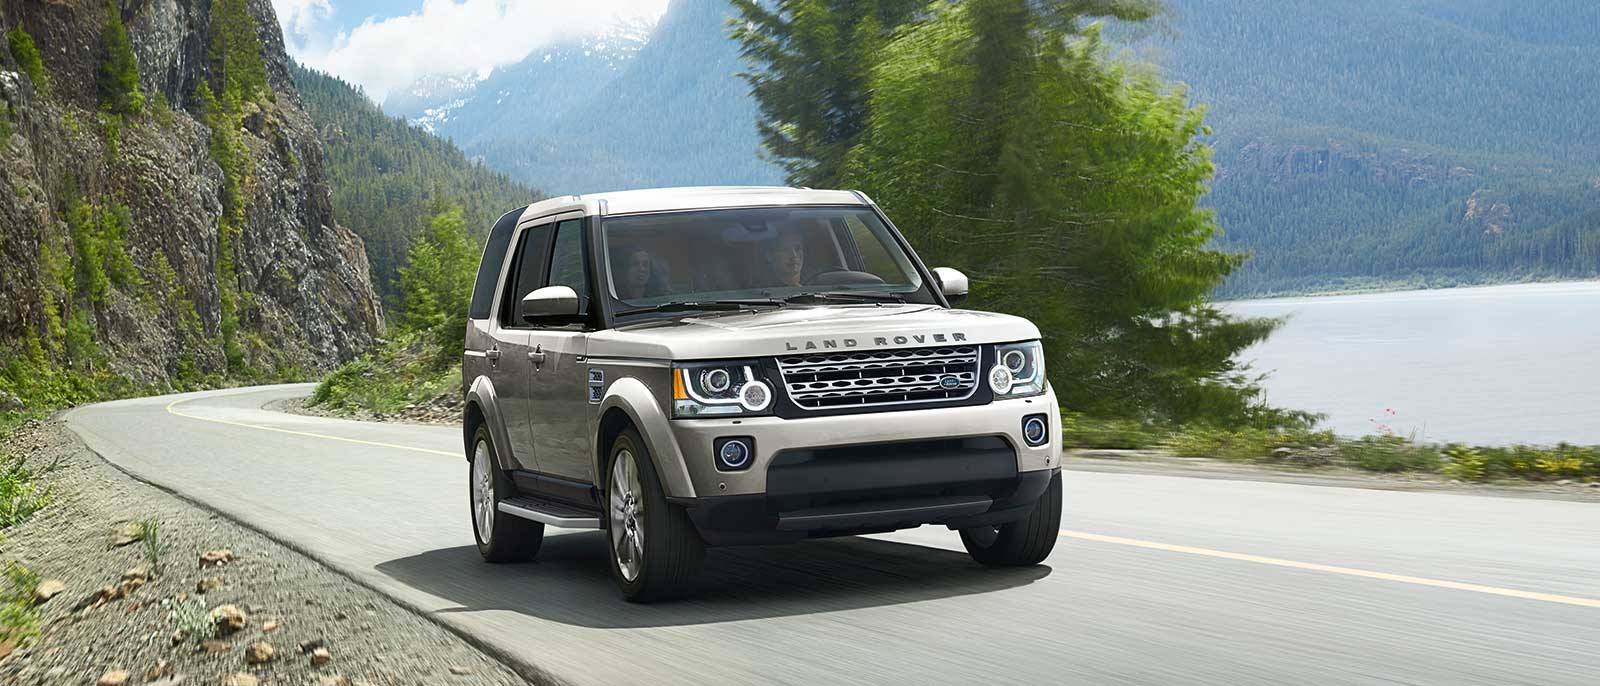 2016 Land Rover LR4 driving through forest